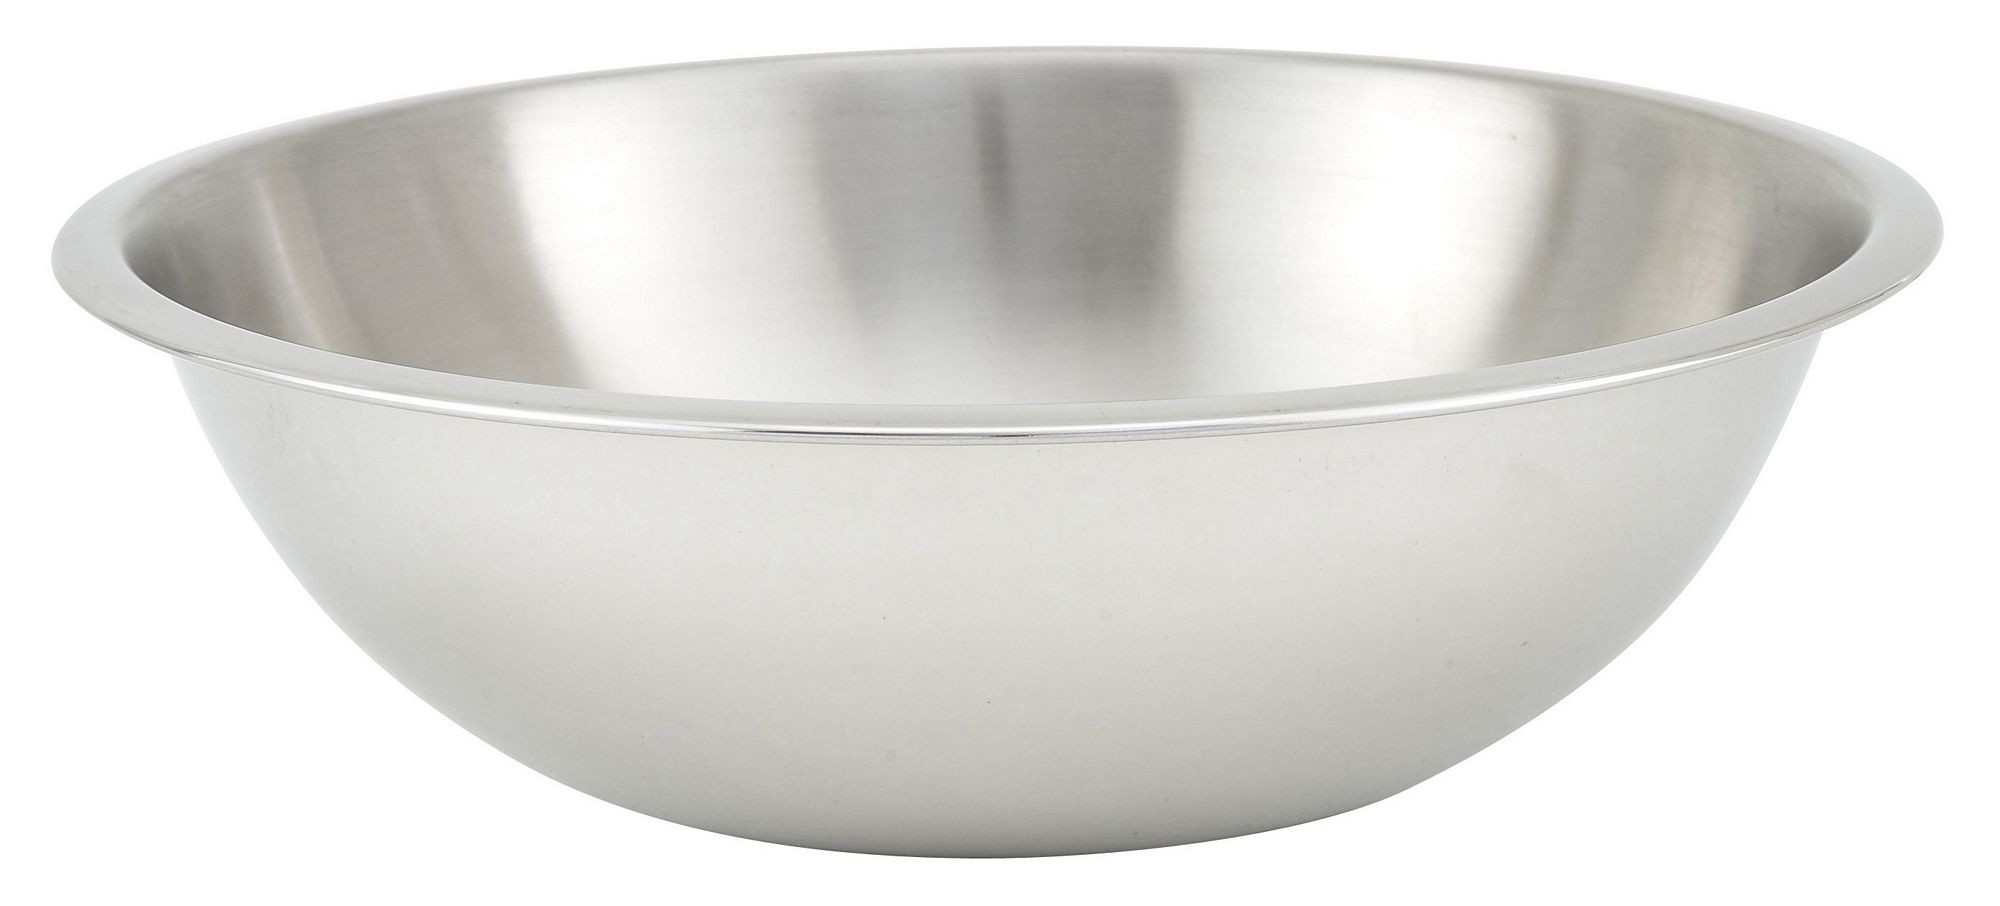 Winco MXHV-400 Heavy Duty Stainless Steel 4 Qt. Mixing Bowl